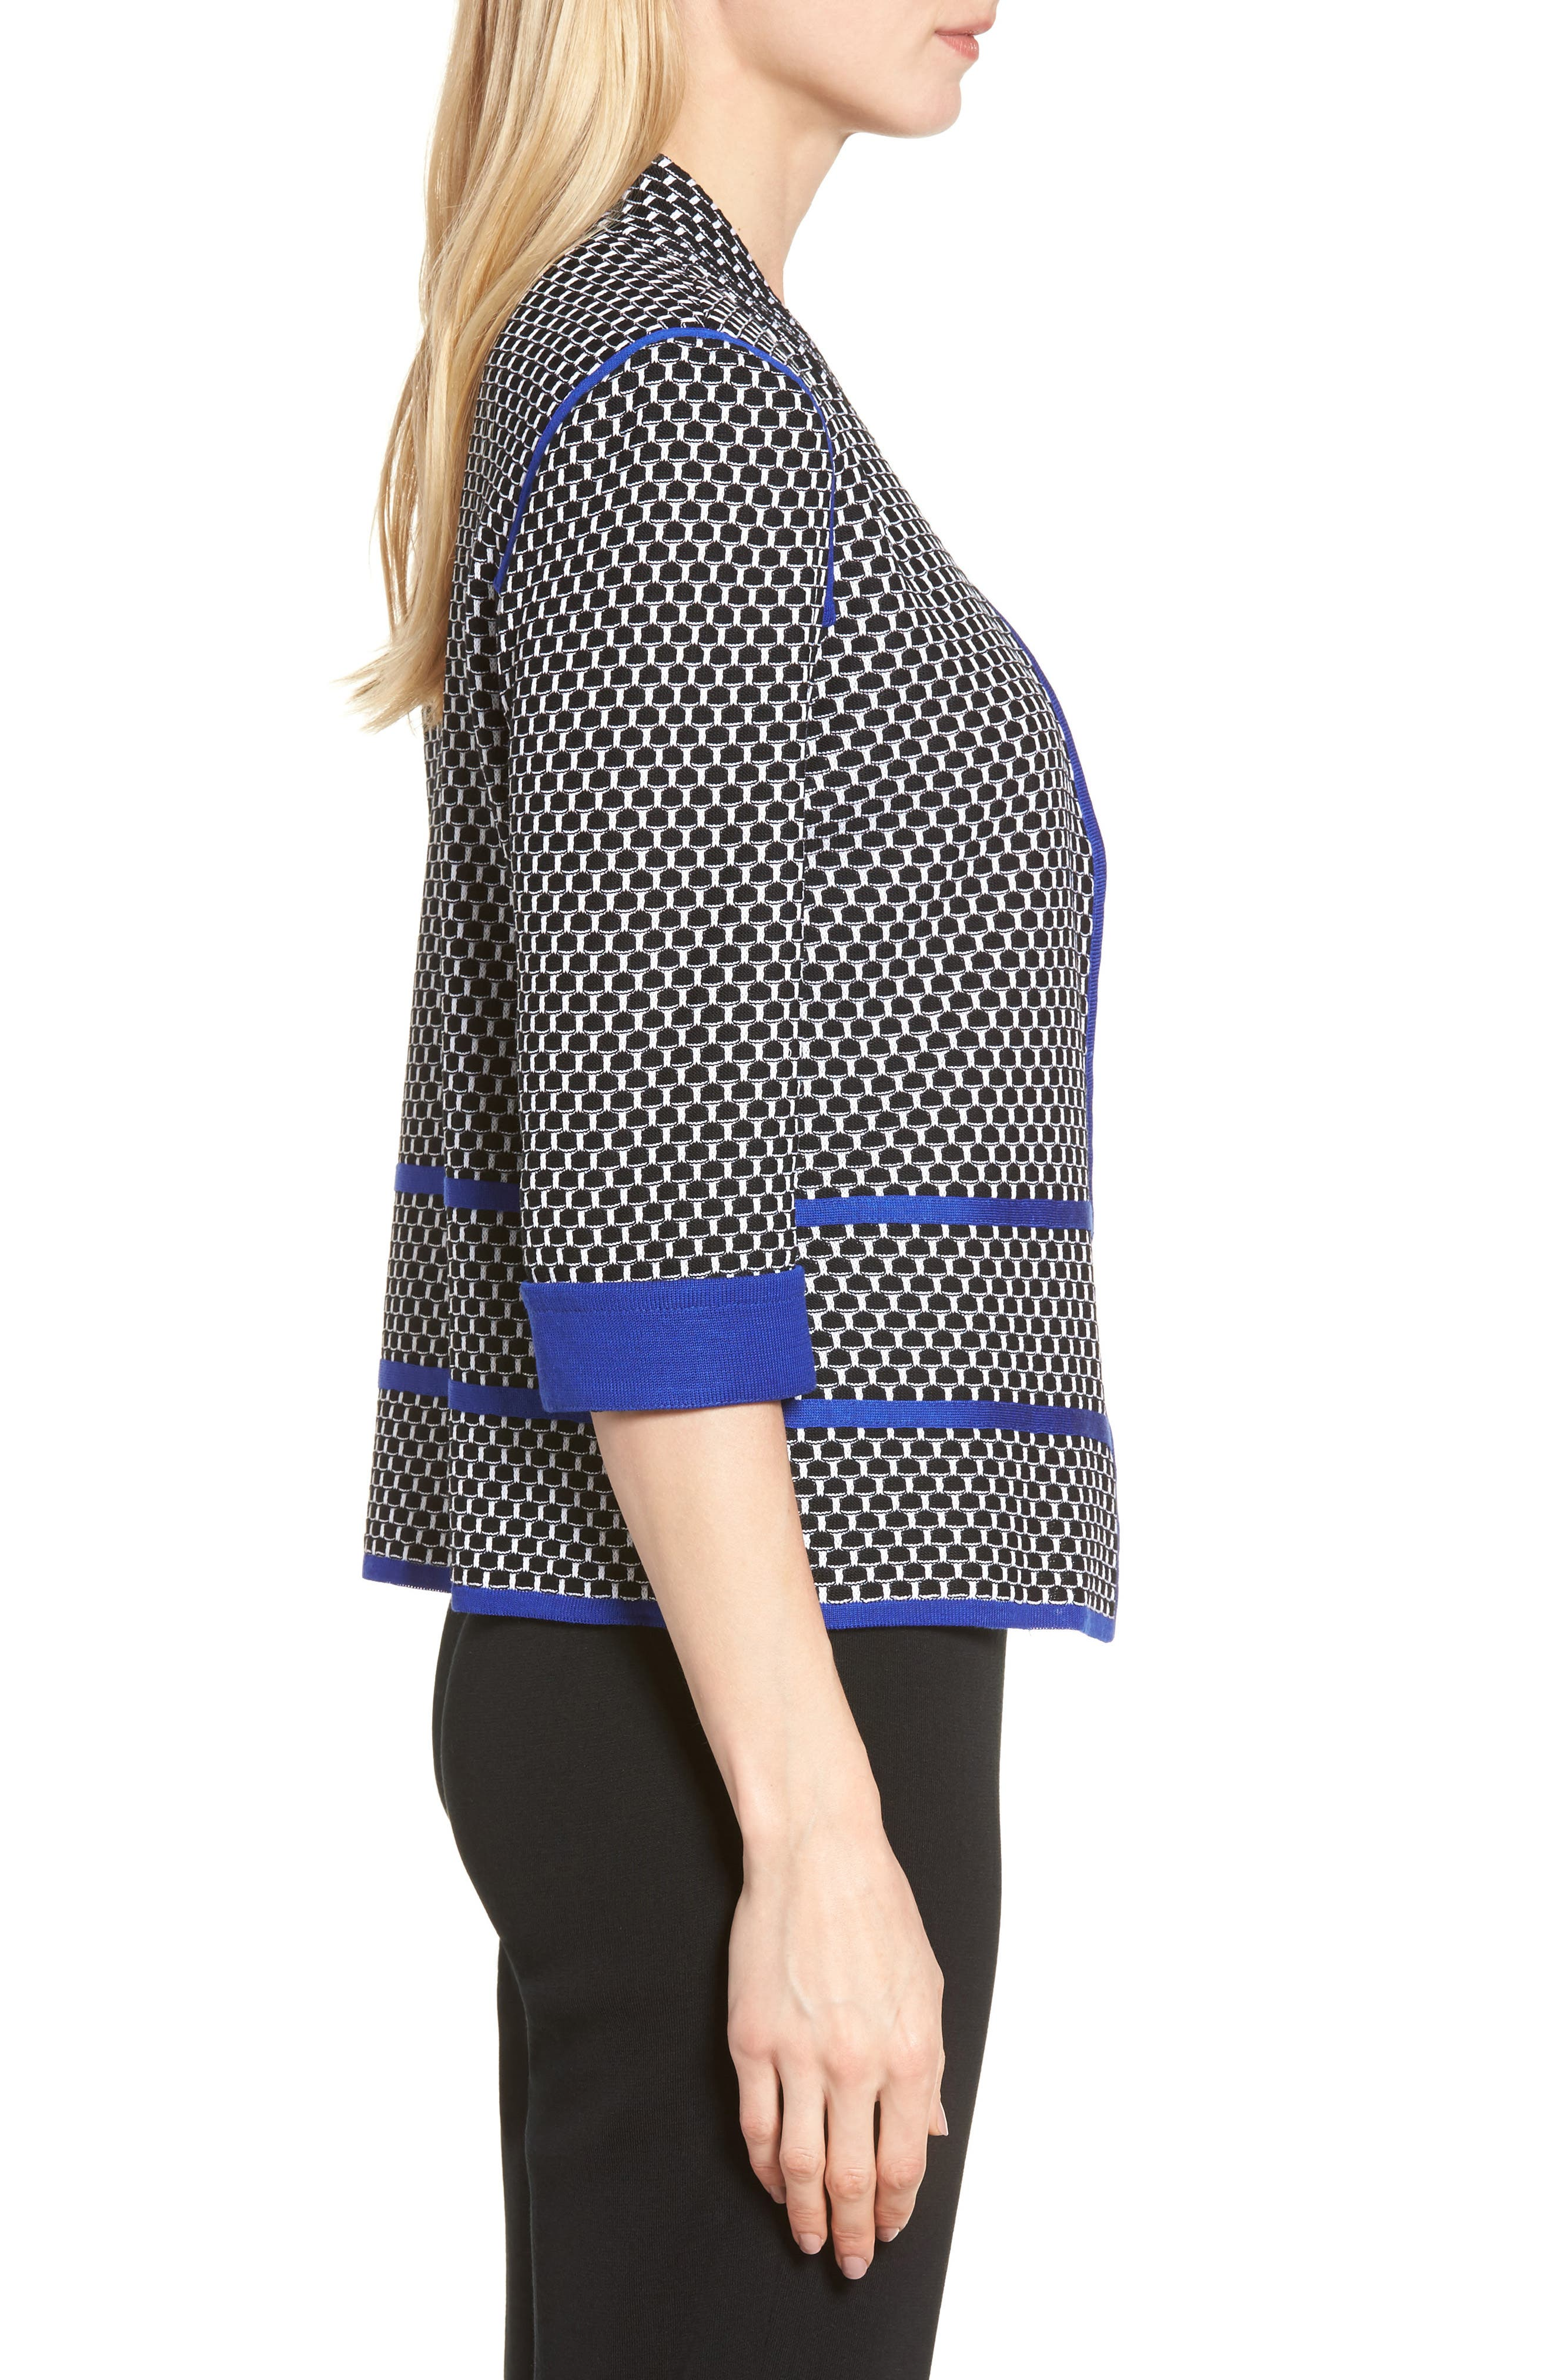 Jacquard Knit Jacket,                             Alternate thumbnail 3, color,                             Black/ Blue Flame/ White